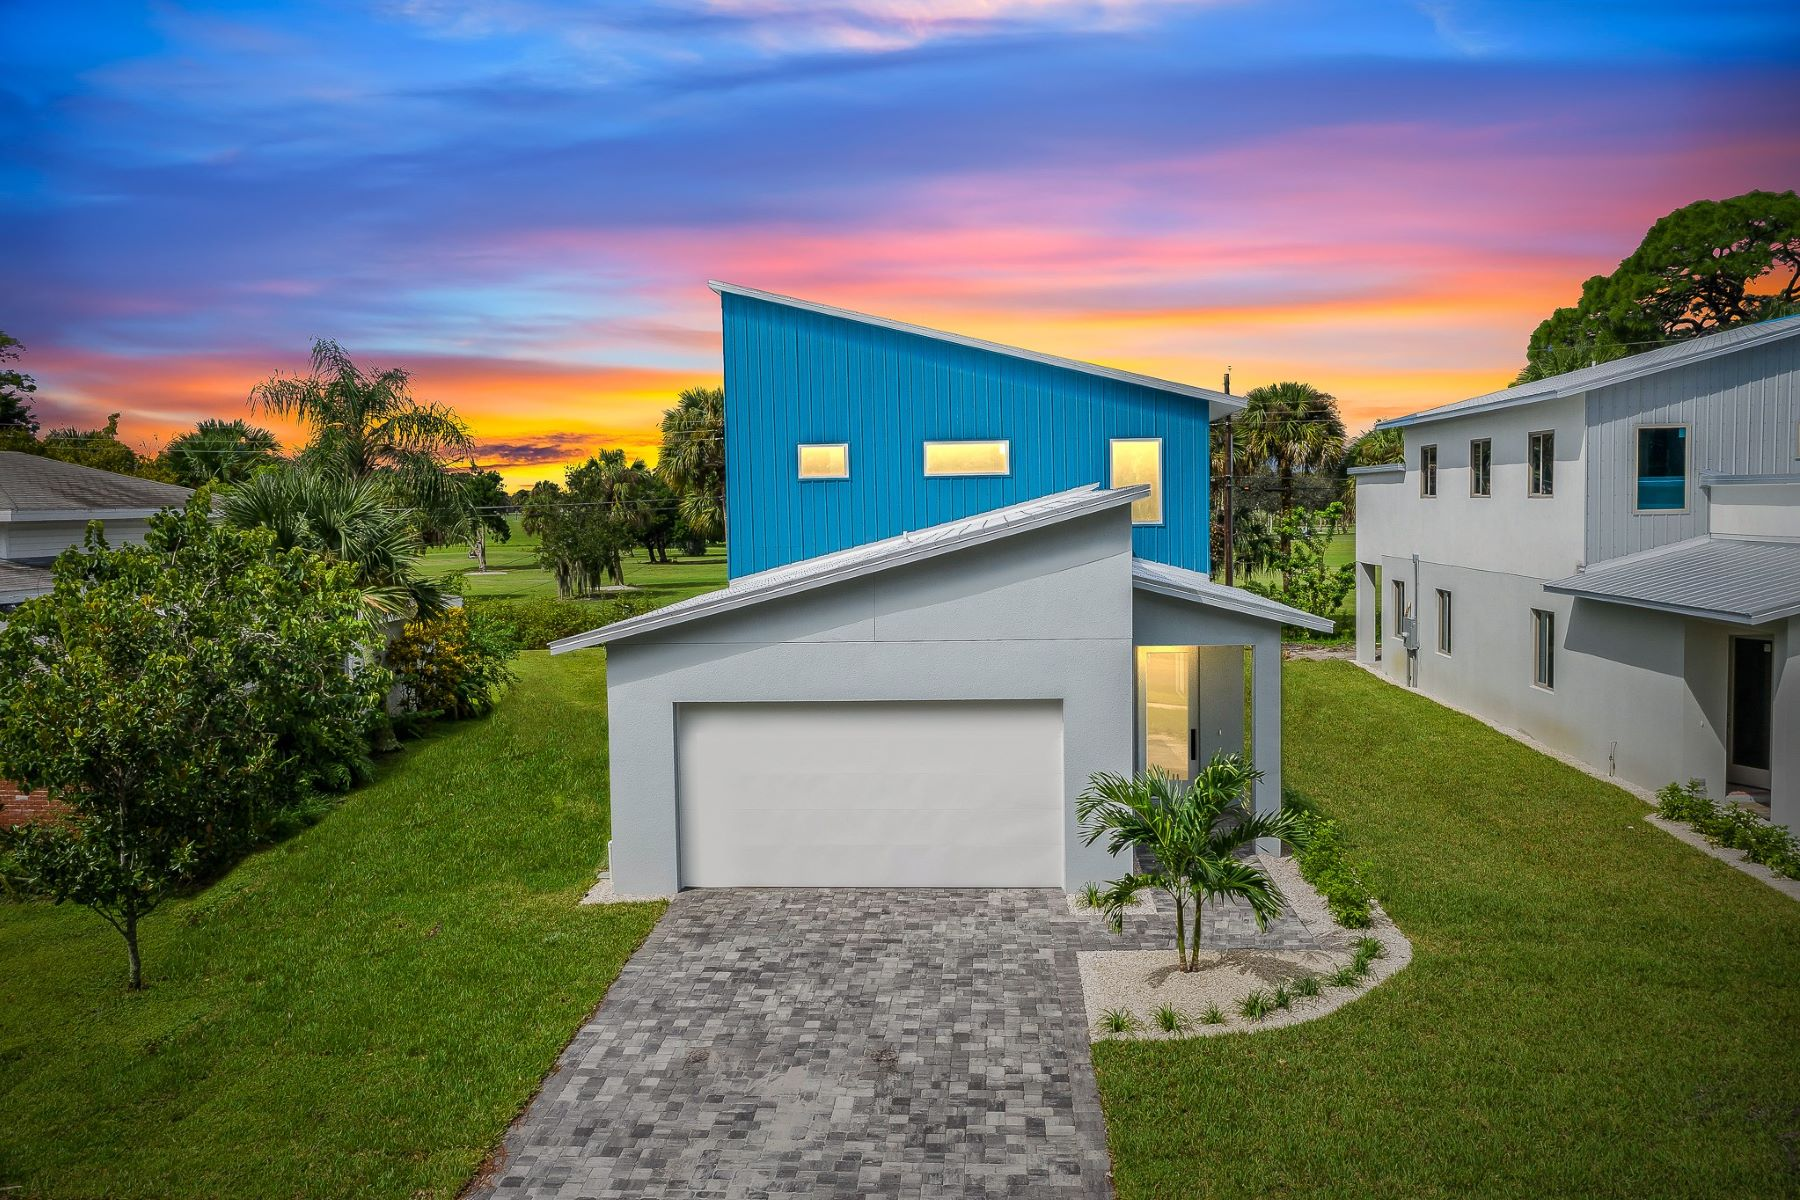 Single Family Homes for Sale at 2168 Country Club Road, Melbourne, FL 2168 Country Club Road Melbourne, Florida 32901 United States